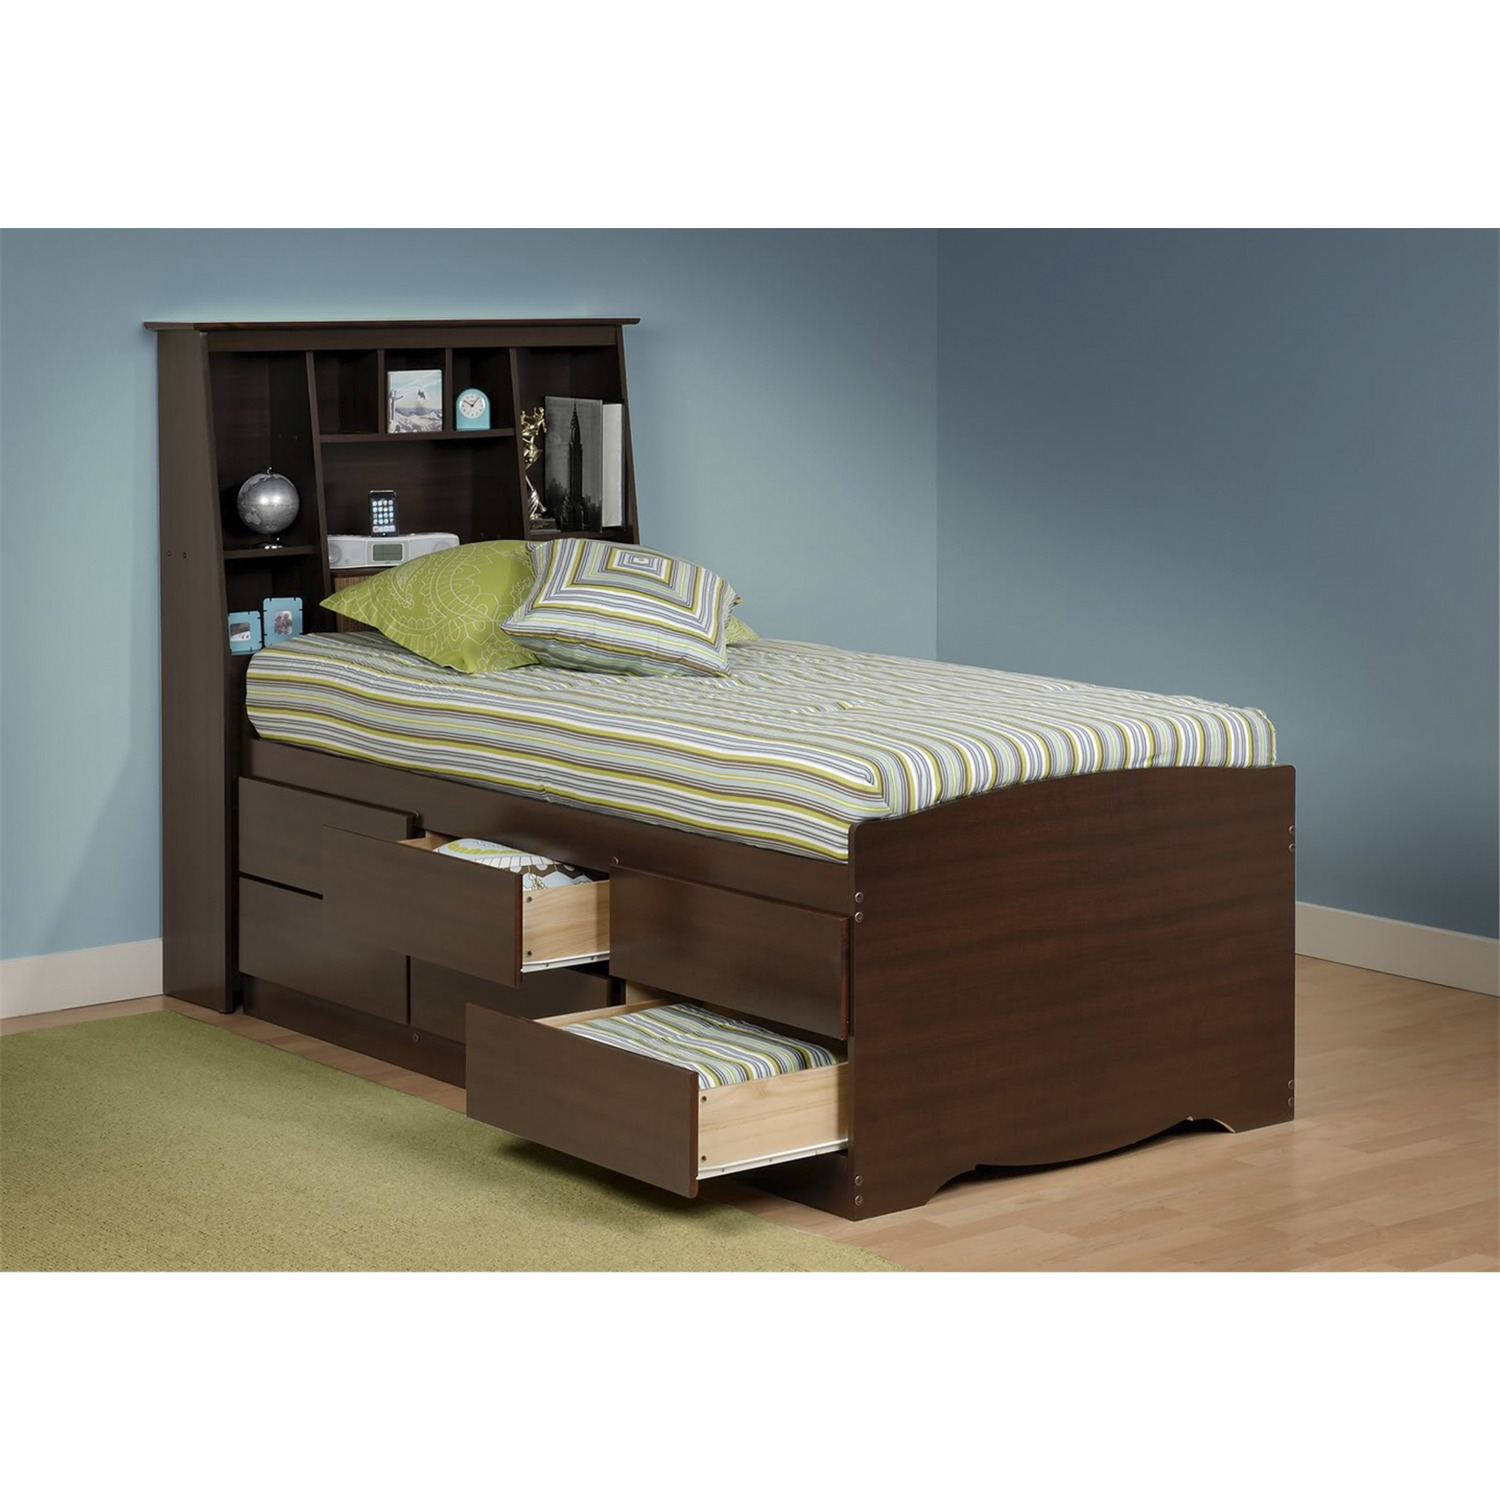 Prepac Tall Captain S Platform Storage Bed W Bookcase